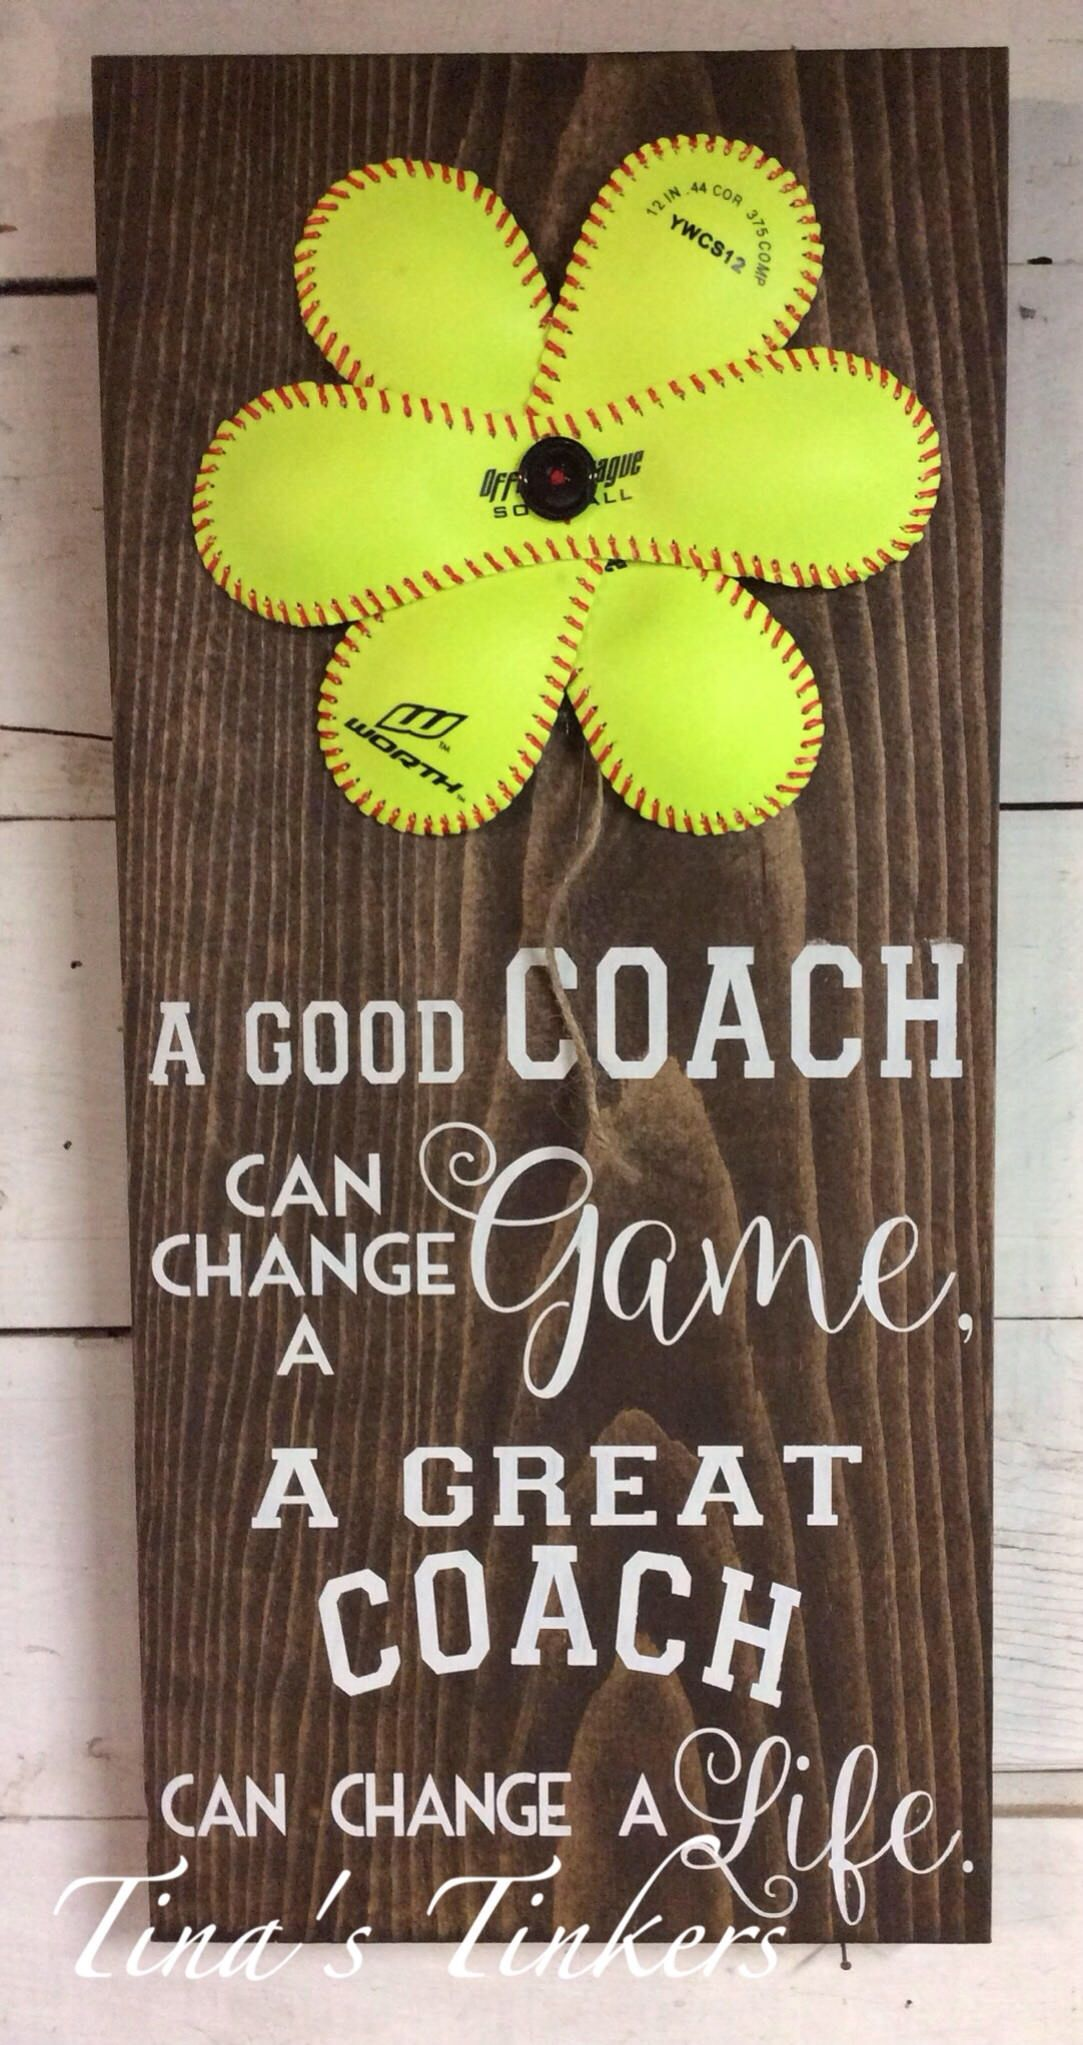 Softball coach gift. Baseball coach. Softball flower. A good coach can change a game. A great coach can change a life.Painted wood sign by TinasTinkers on Etsy https://www.etsy.com/listing/516548688/softball-coach-gift-baseball-coach